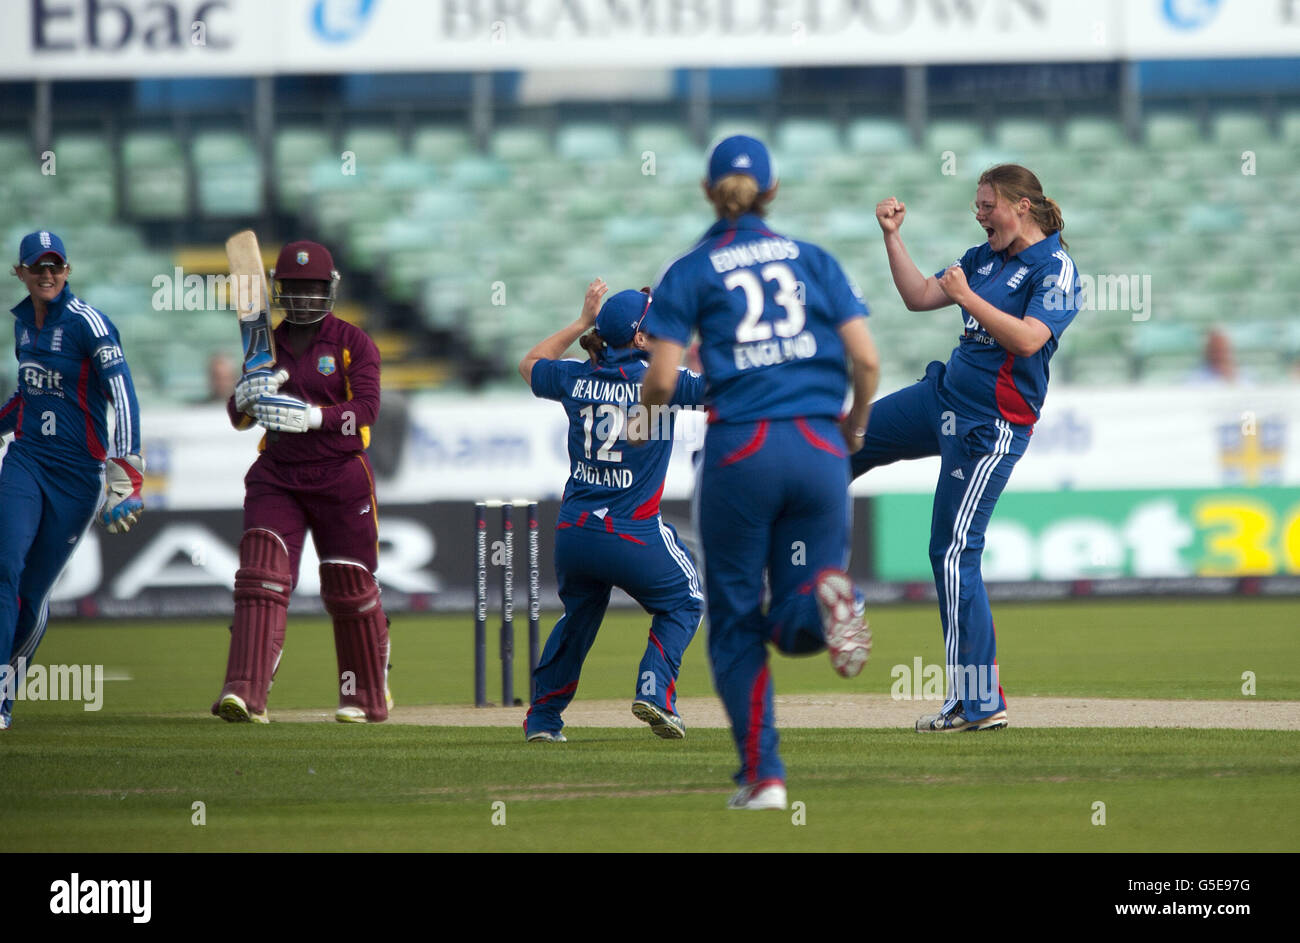 Cricket - First NatWest Women's T20 - England v West Indies - Emirates Durham ICG - Stock Image